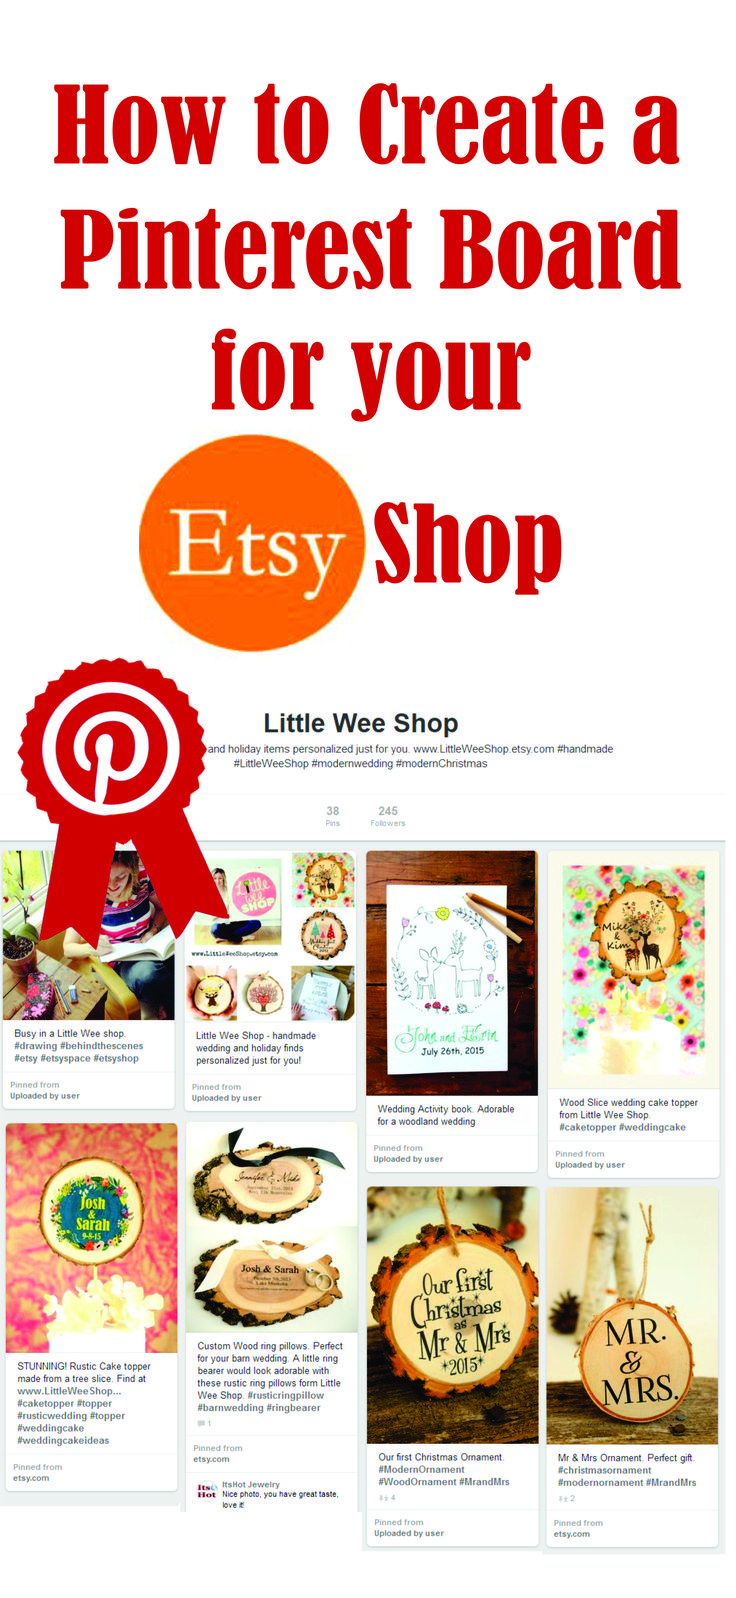 How to create a Pinterest board for your ETSY shop. Great tips! Learn how to create a board to represent your Etsy business with a visual board of your shop. #EtsyShop #BestPinterestBoard #Etsy